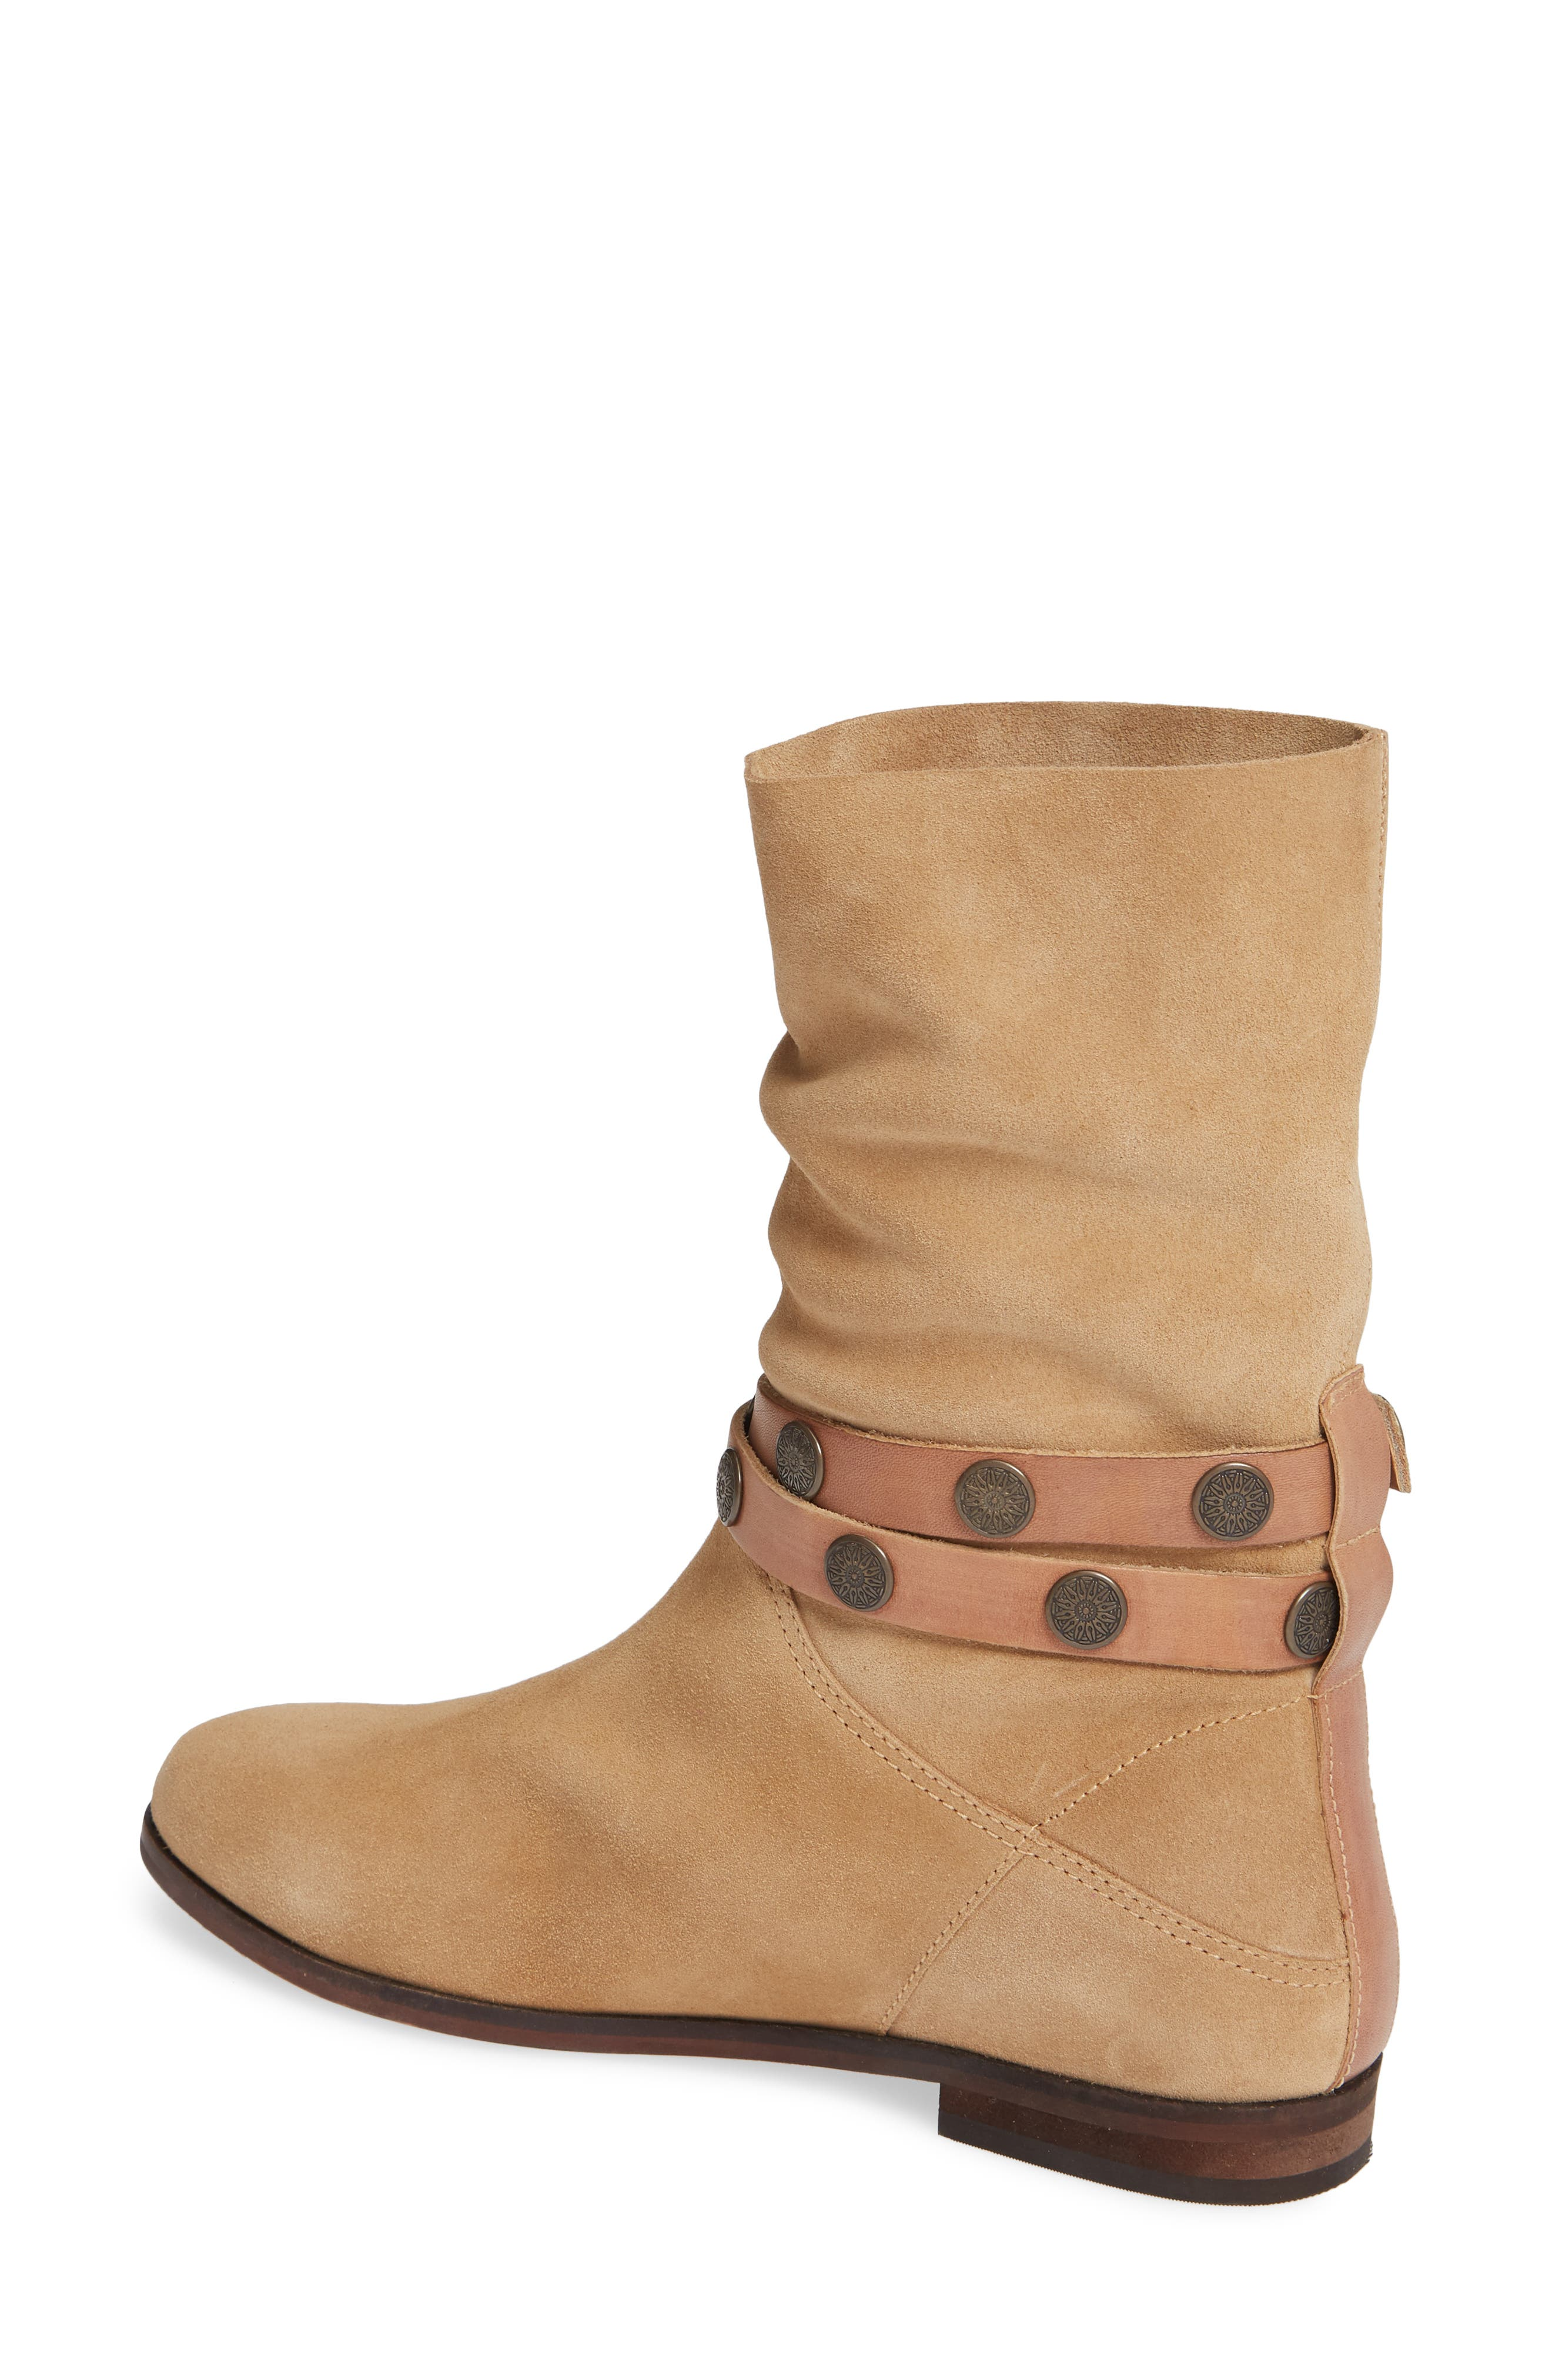 FREE PEOPLE, Hayden Buckle Strap Boot, Alternate thumbnail 2, color, SAND SUEDE